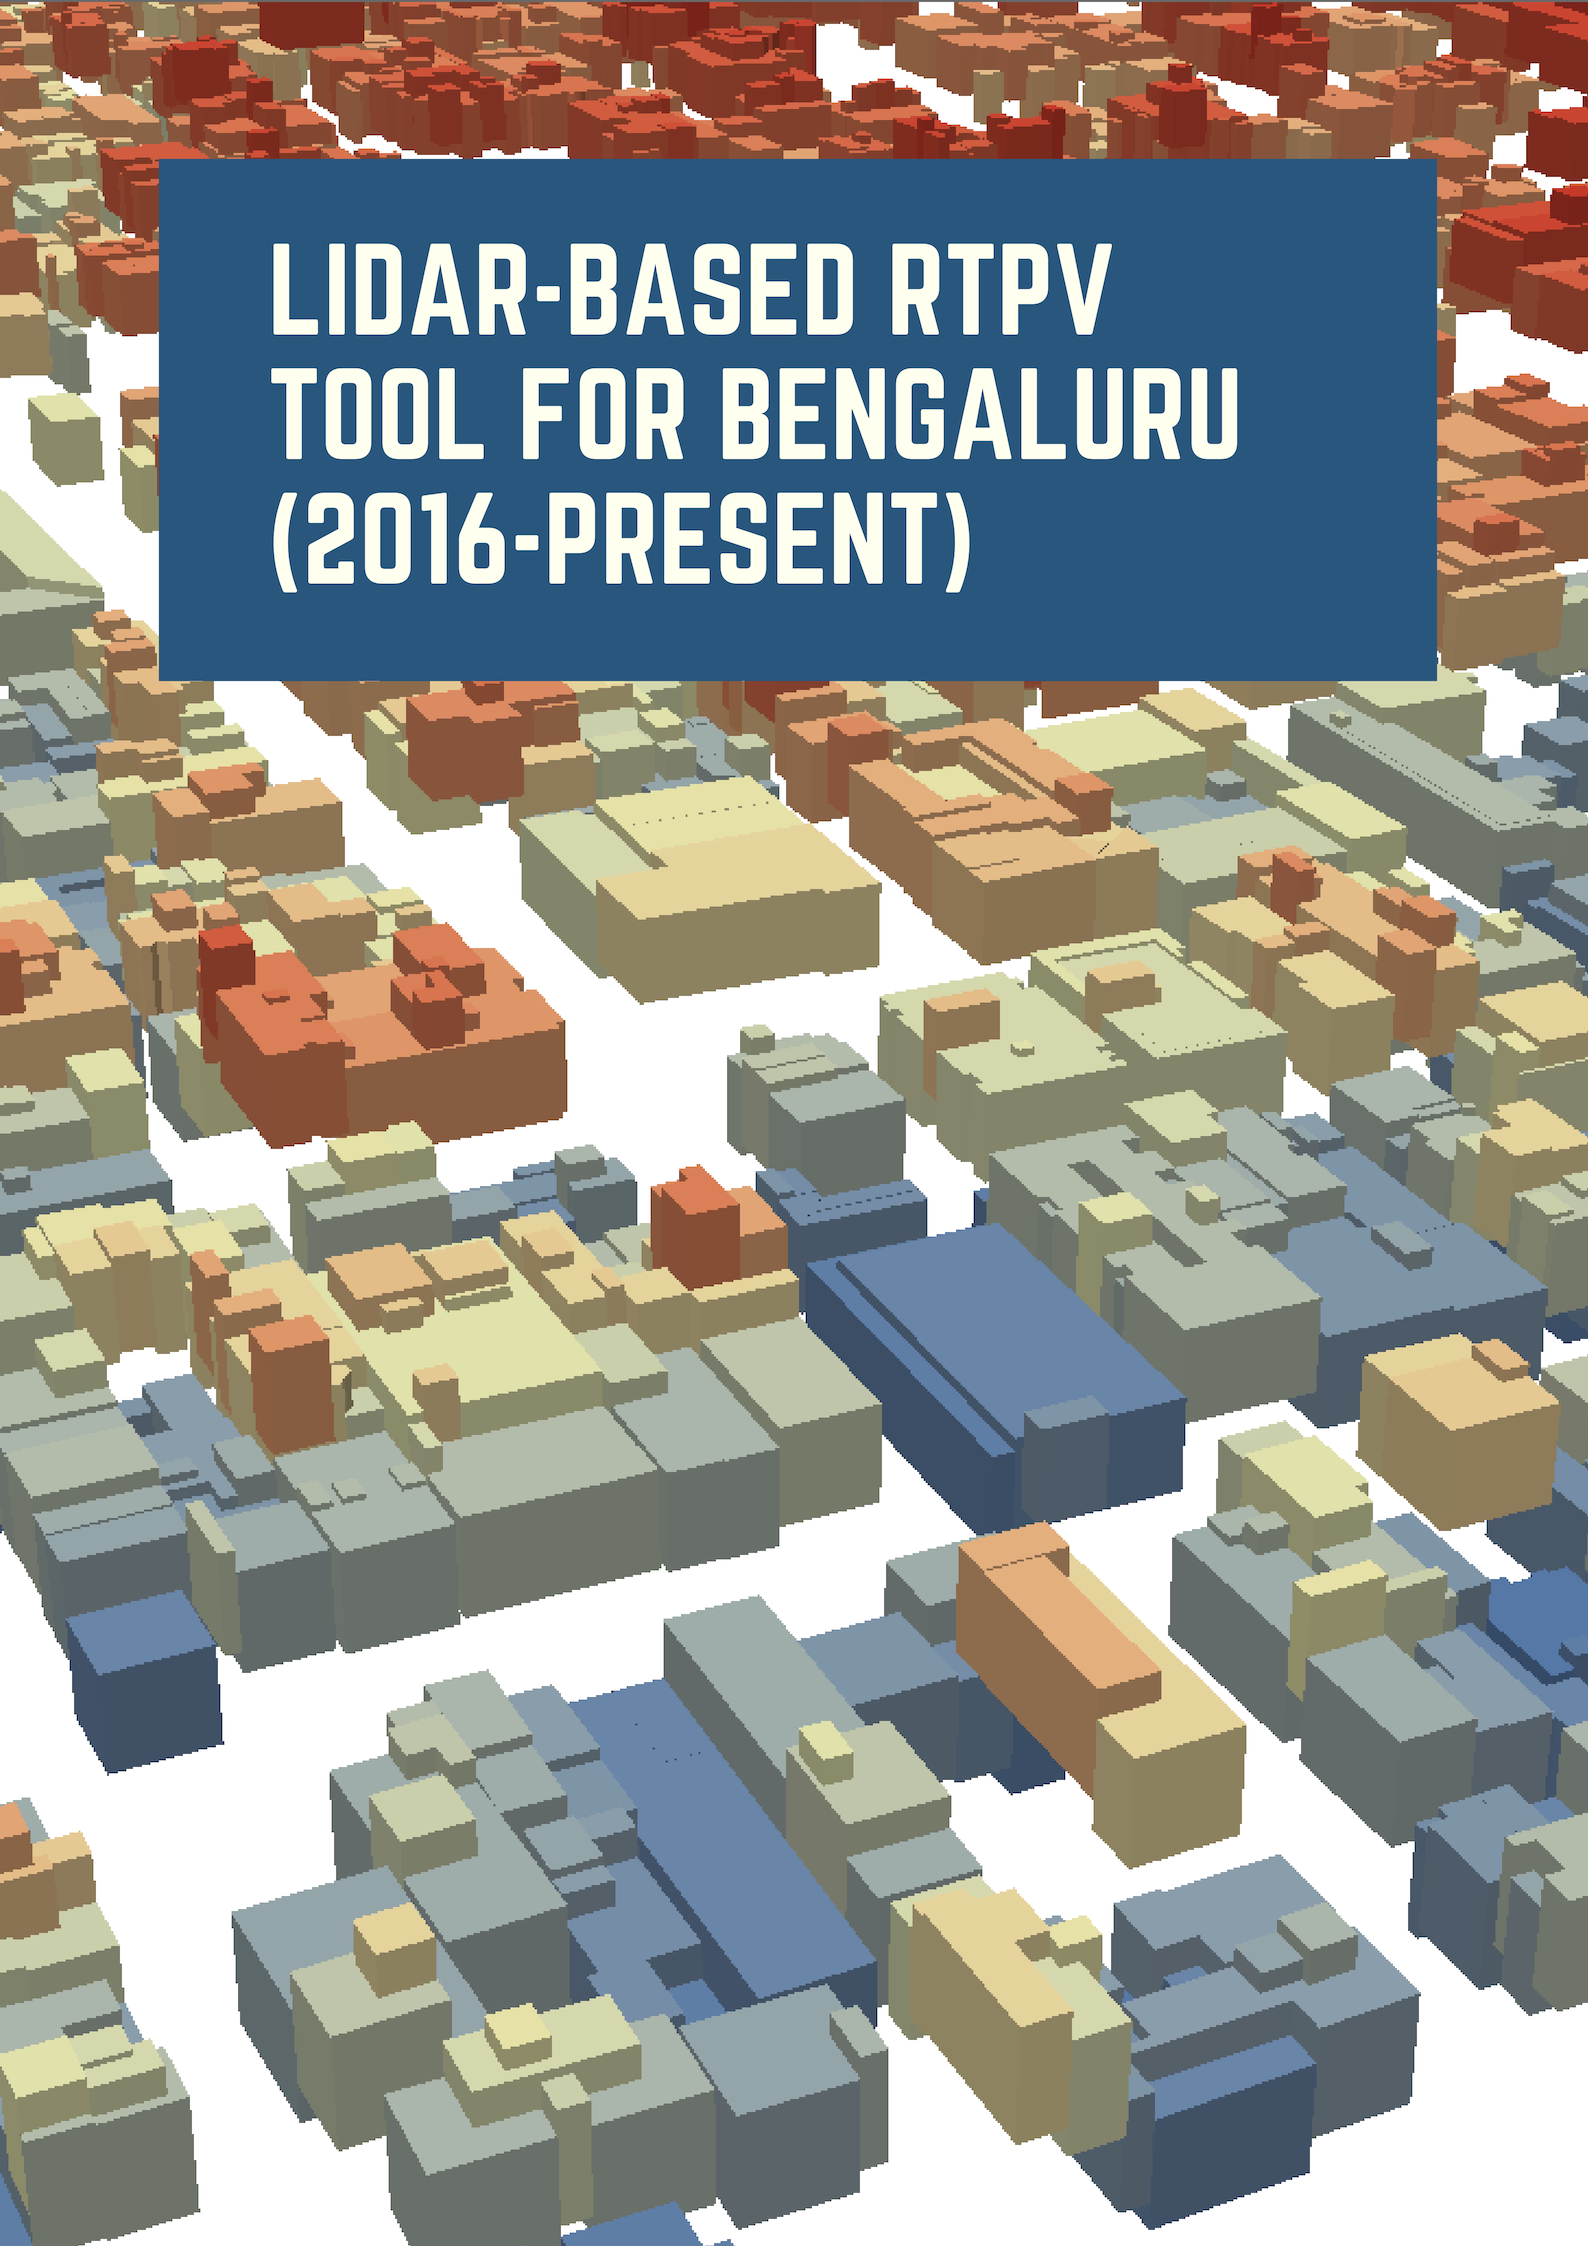 LiDAR-based RTPV Tool for Bengaluru